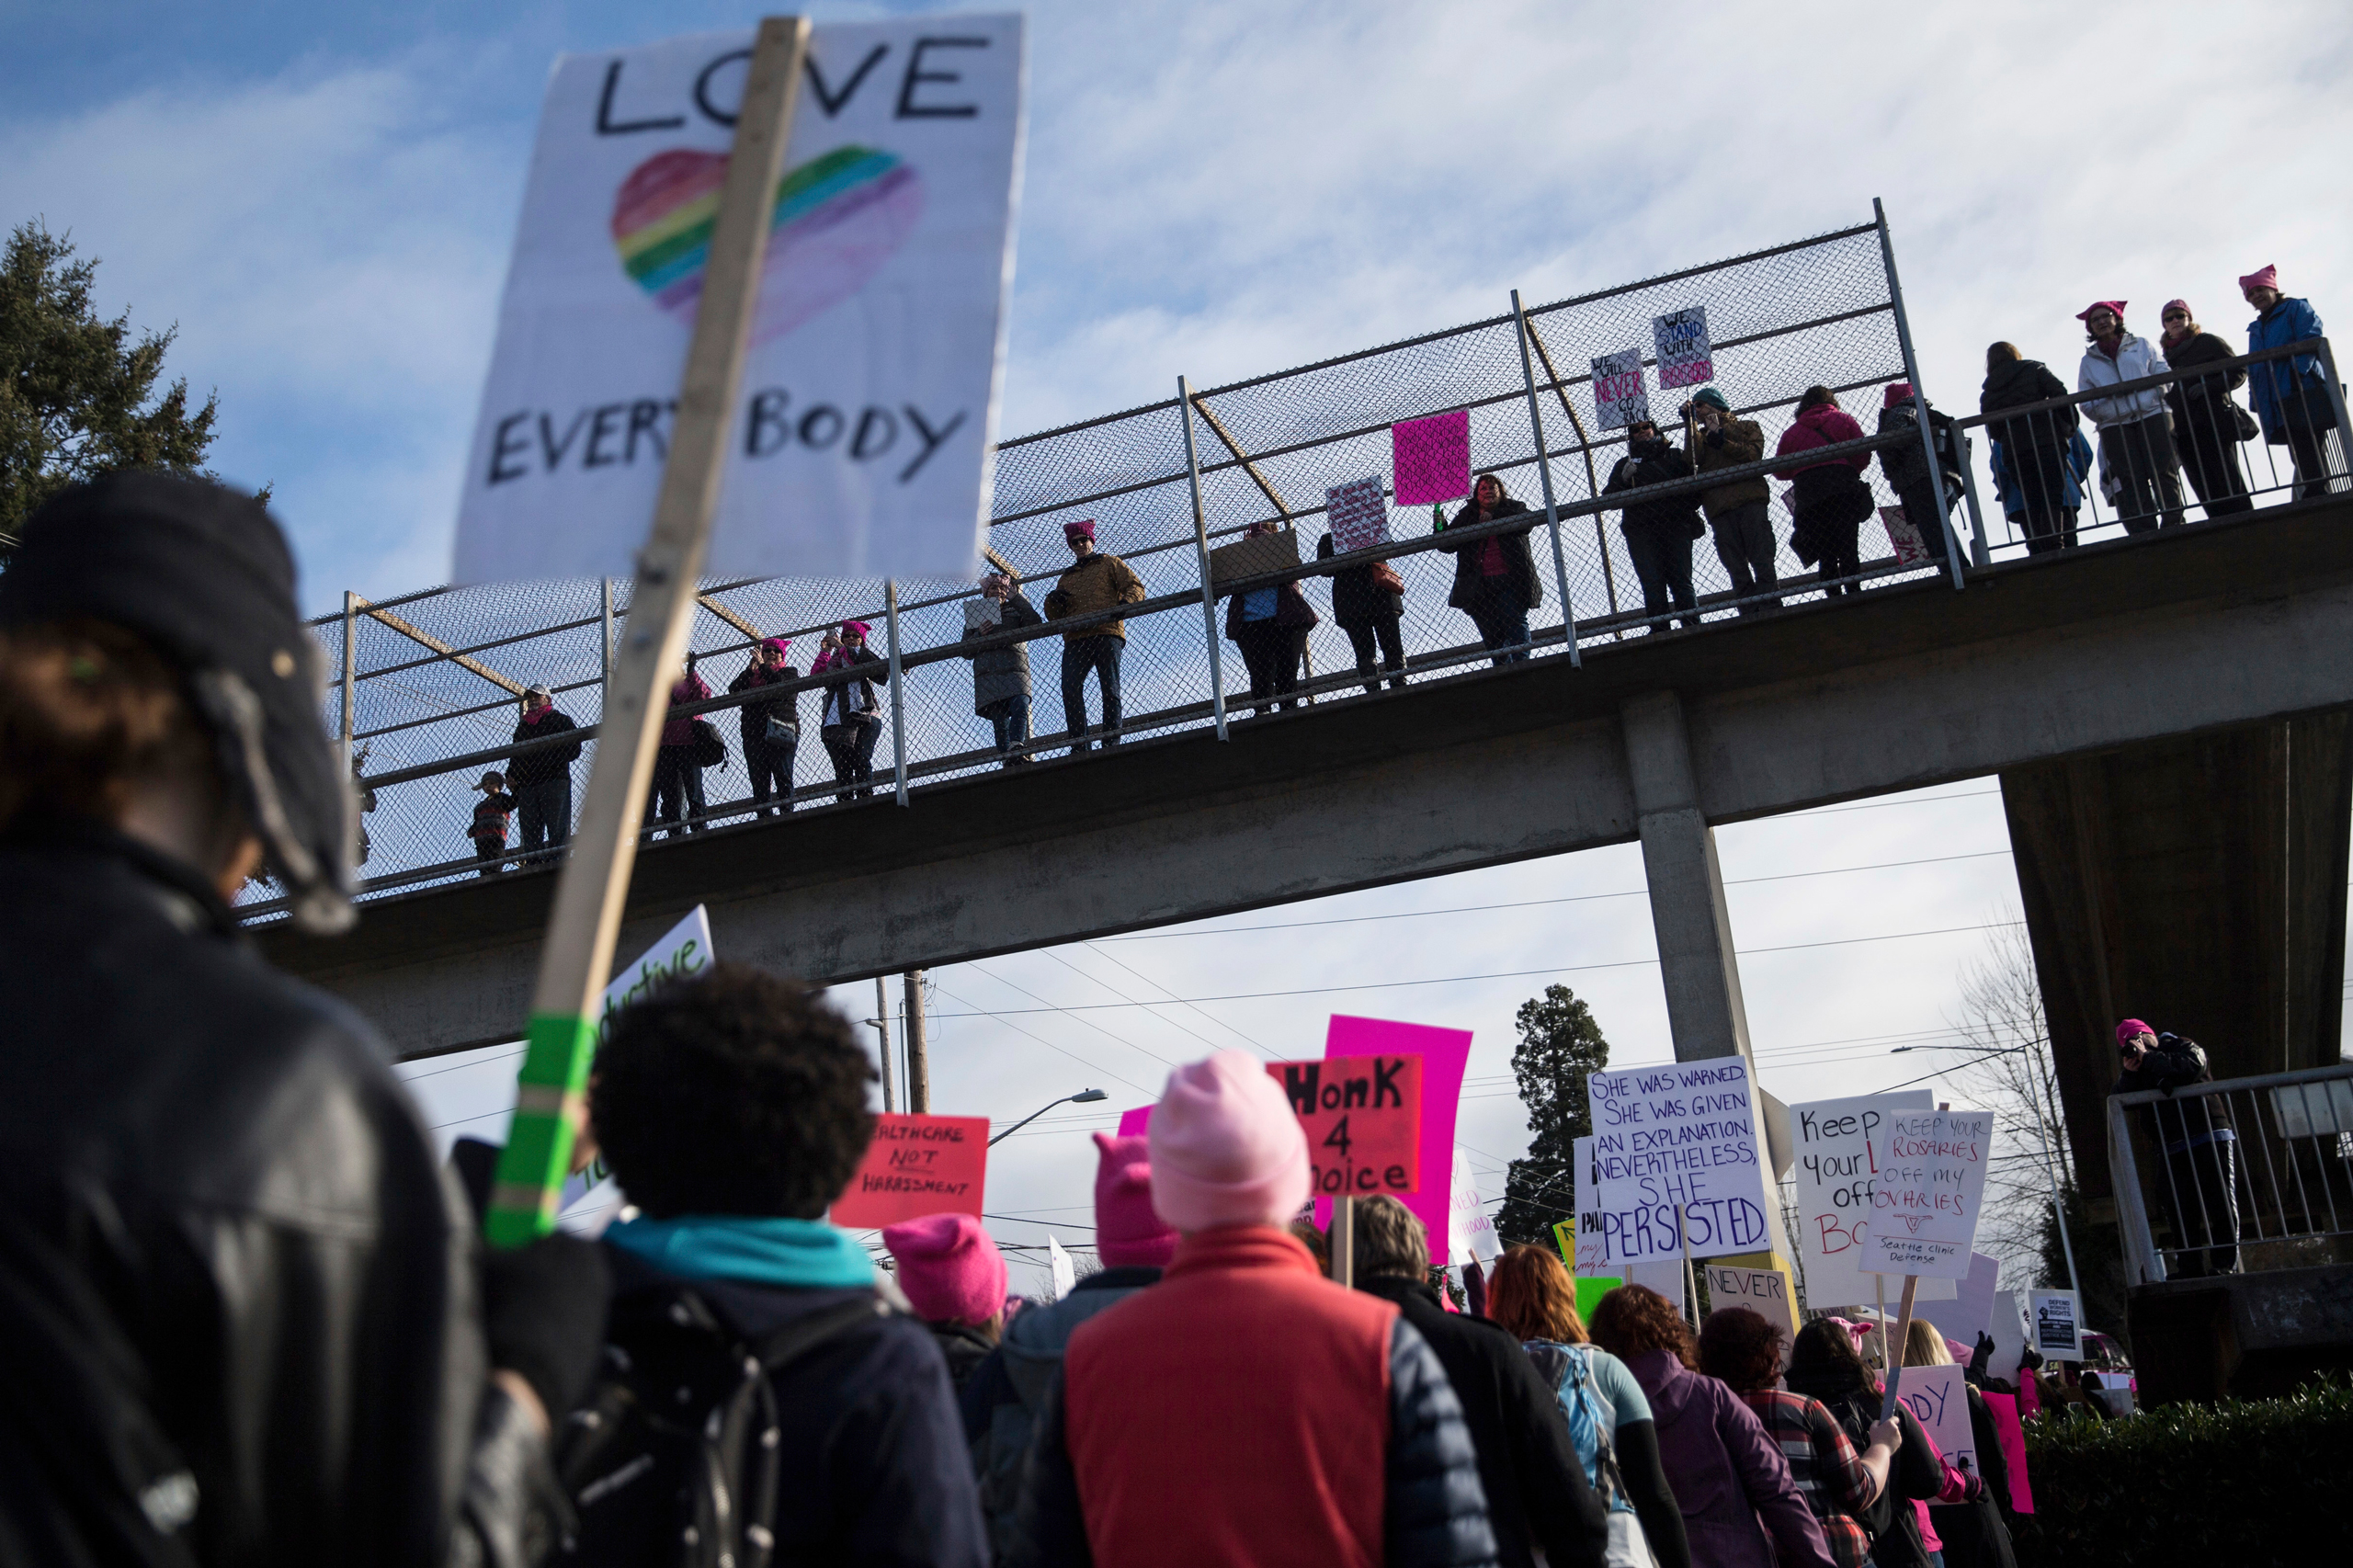 Demonstrators gathered to counter a defund Planned Parenthood protest outside a Planned Parenthood in Kent, Wash., on Feb. 11, 2017.